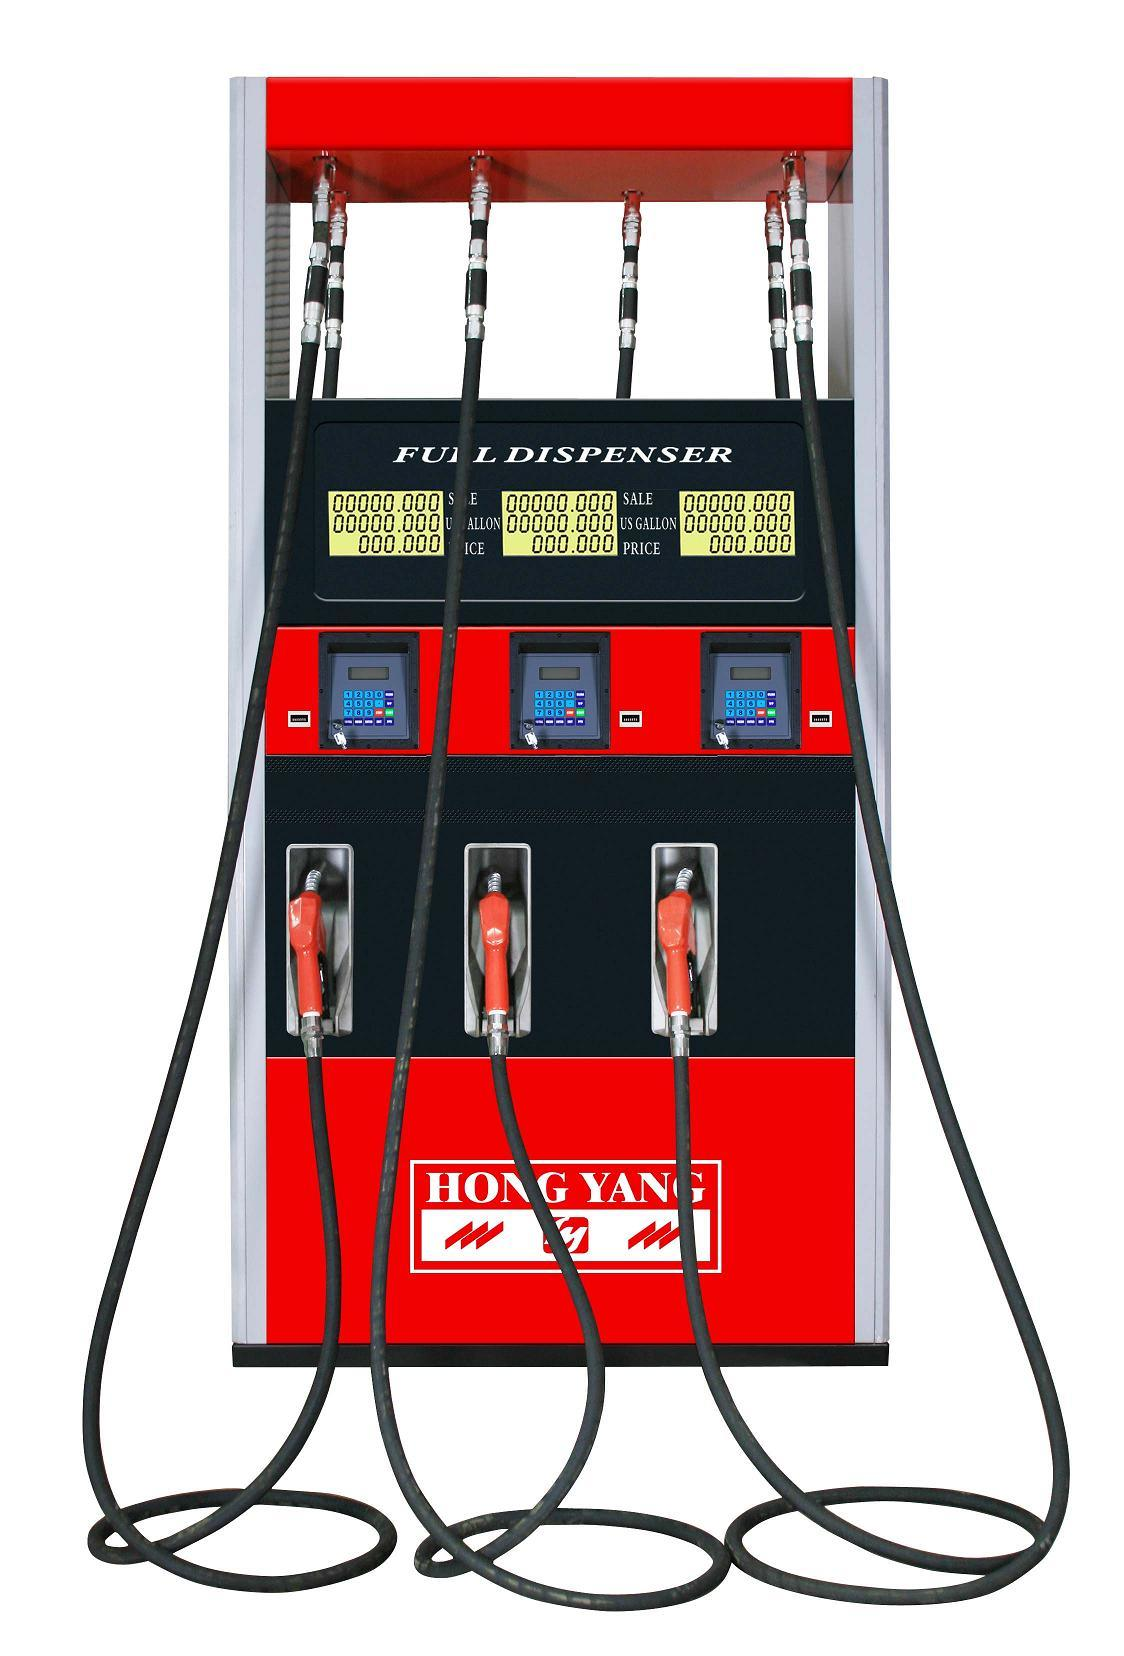 Top-Selling Digital Fuel Dispenser Pumps